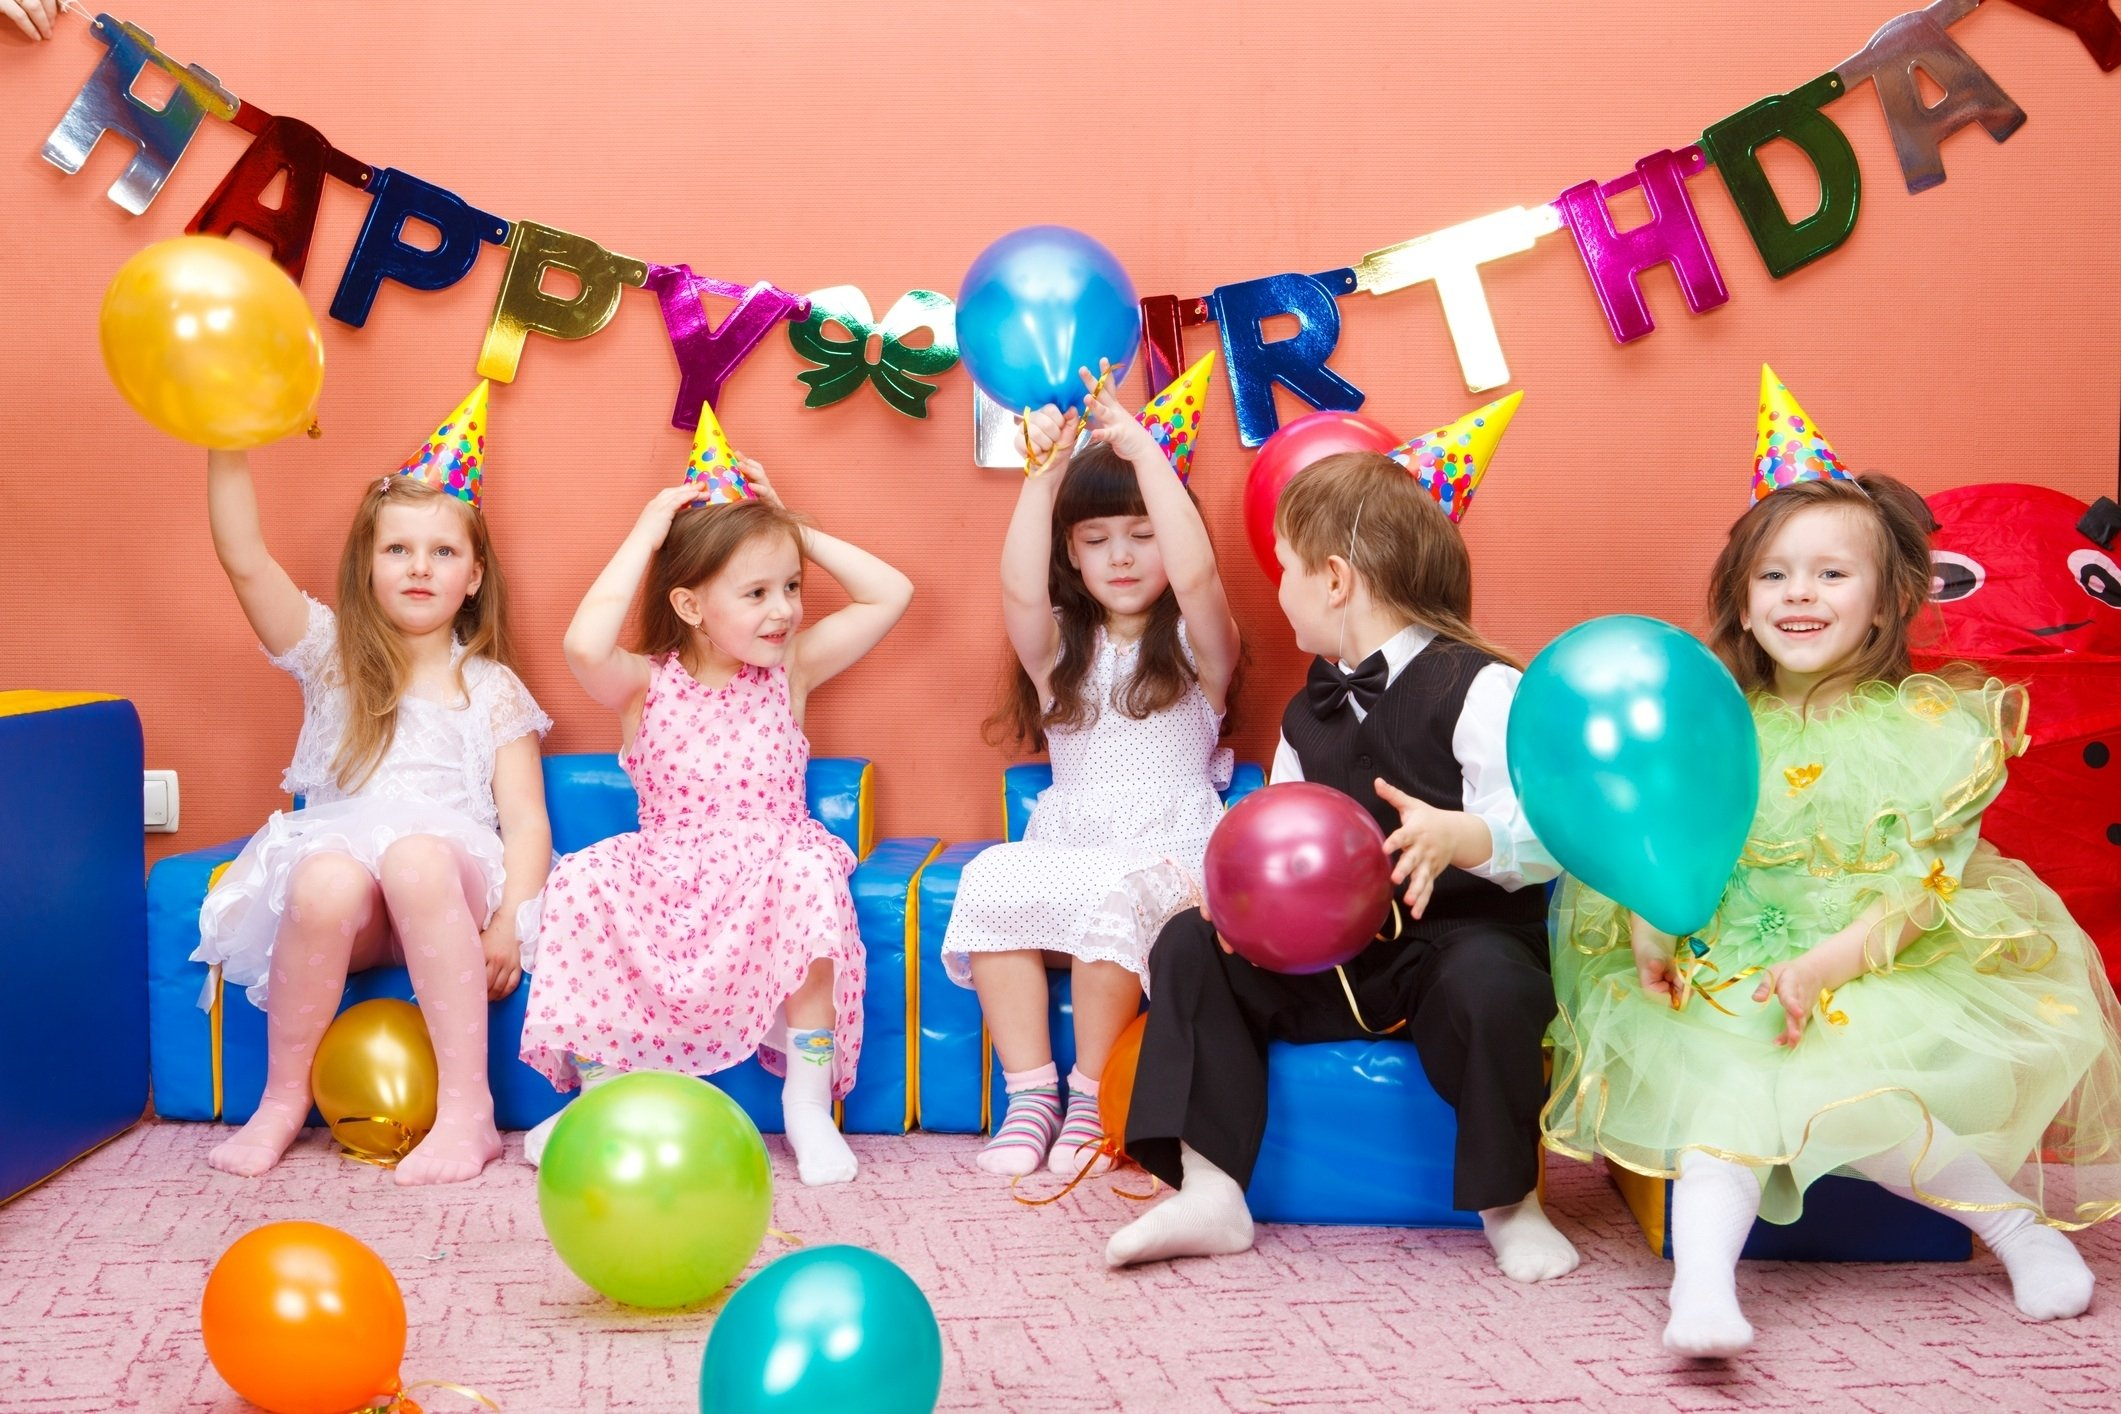 10 Attractive 12 Year Old Birthday Ideas 45 awesome 11 12 year old birthday party ideas birthday inspire 13 2020